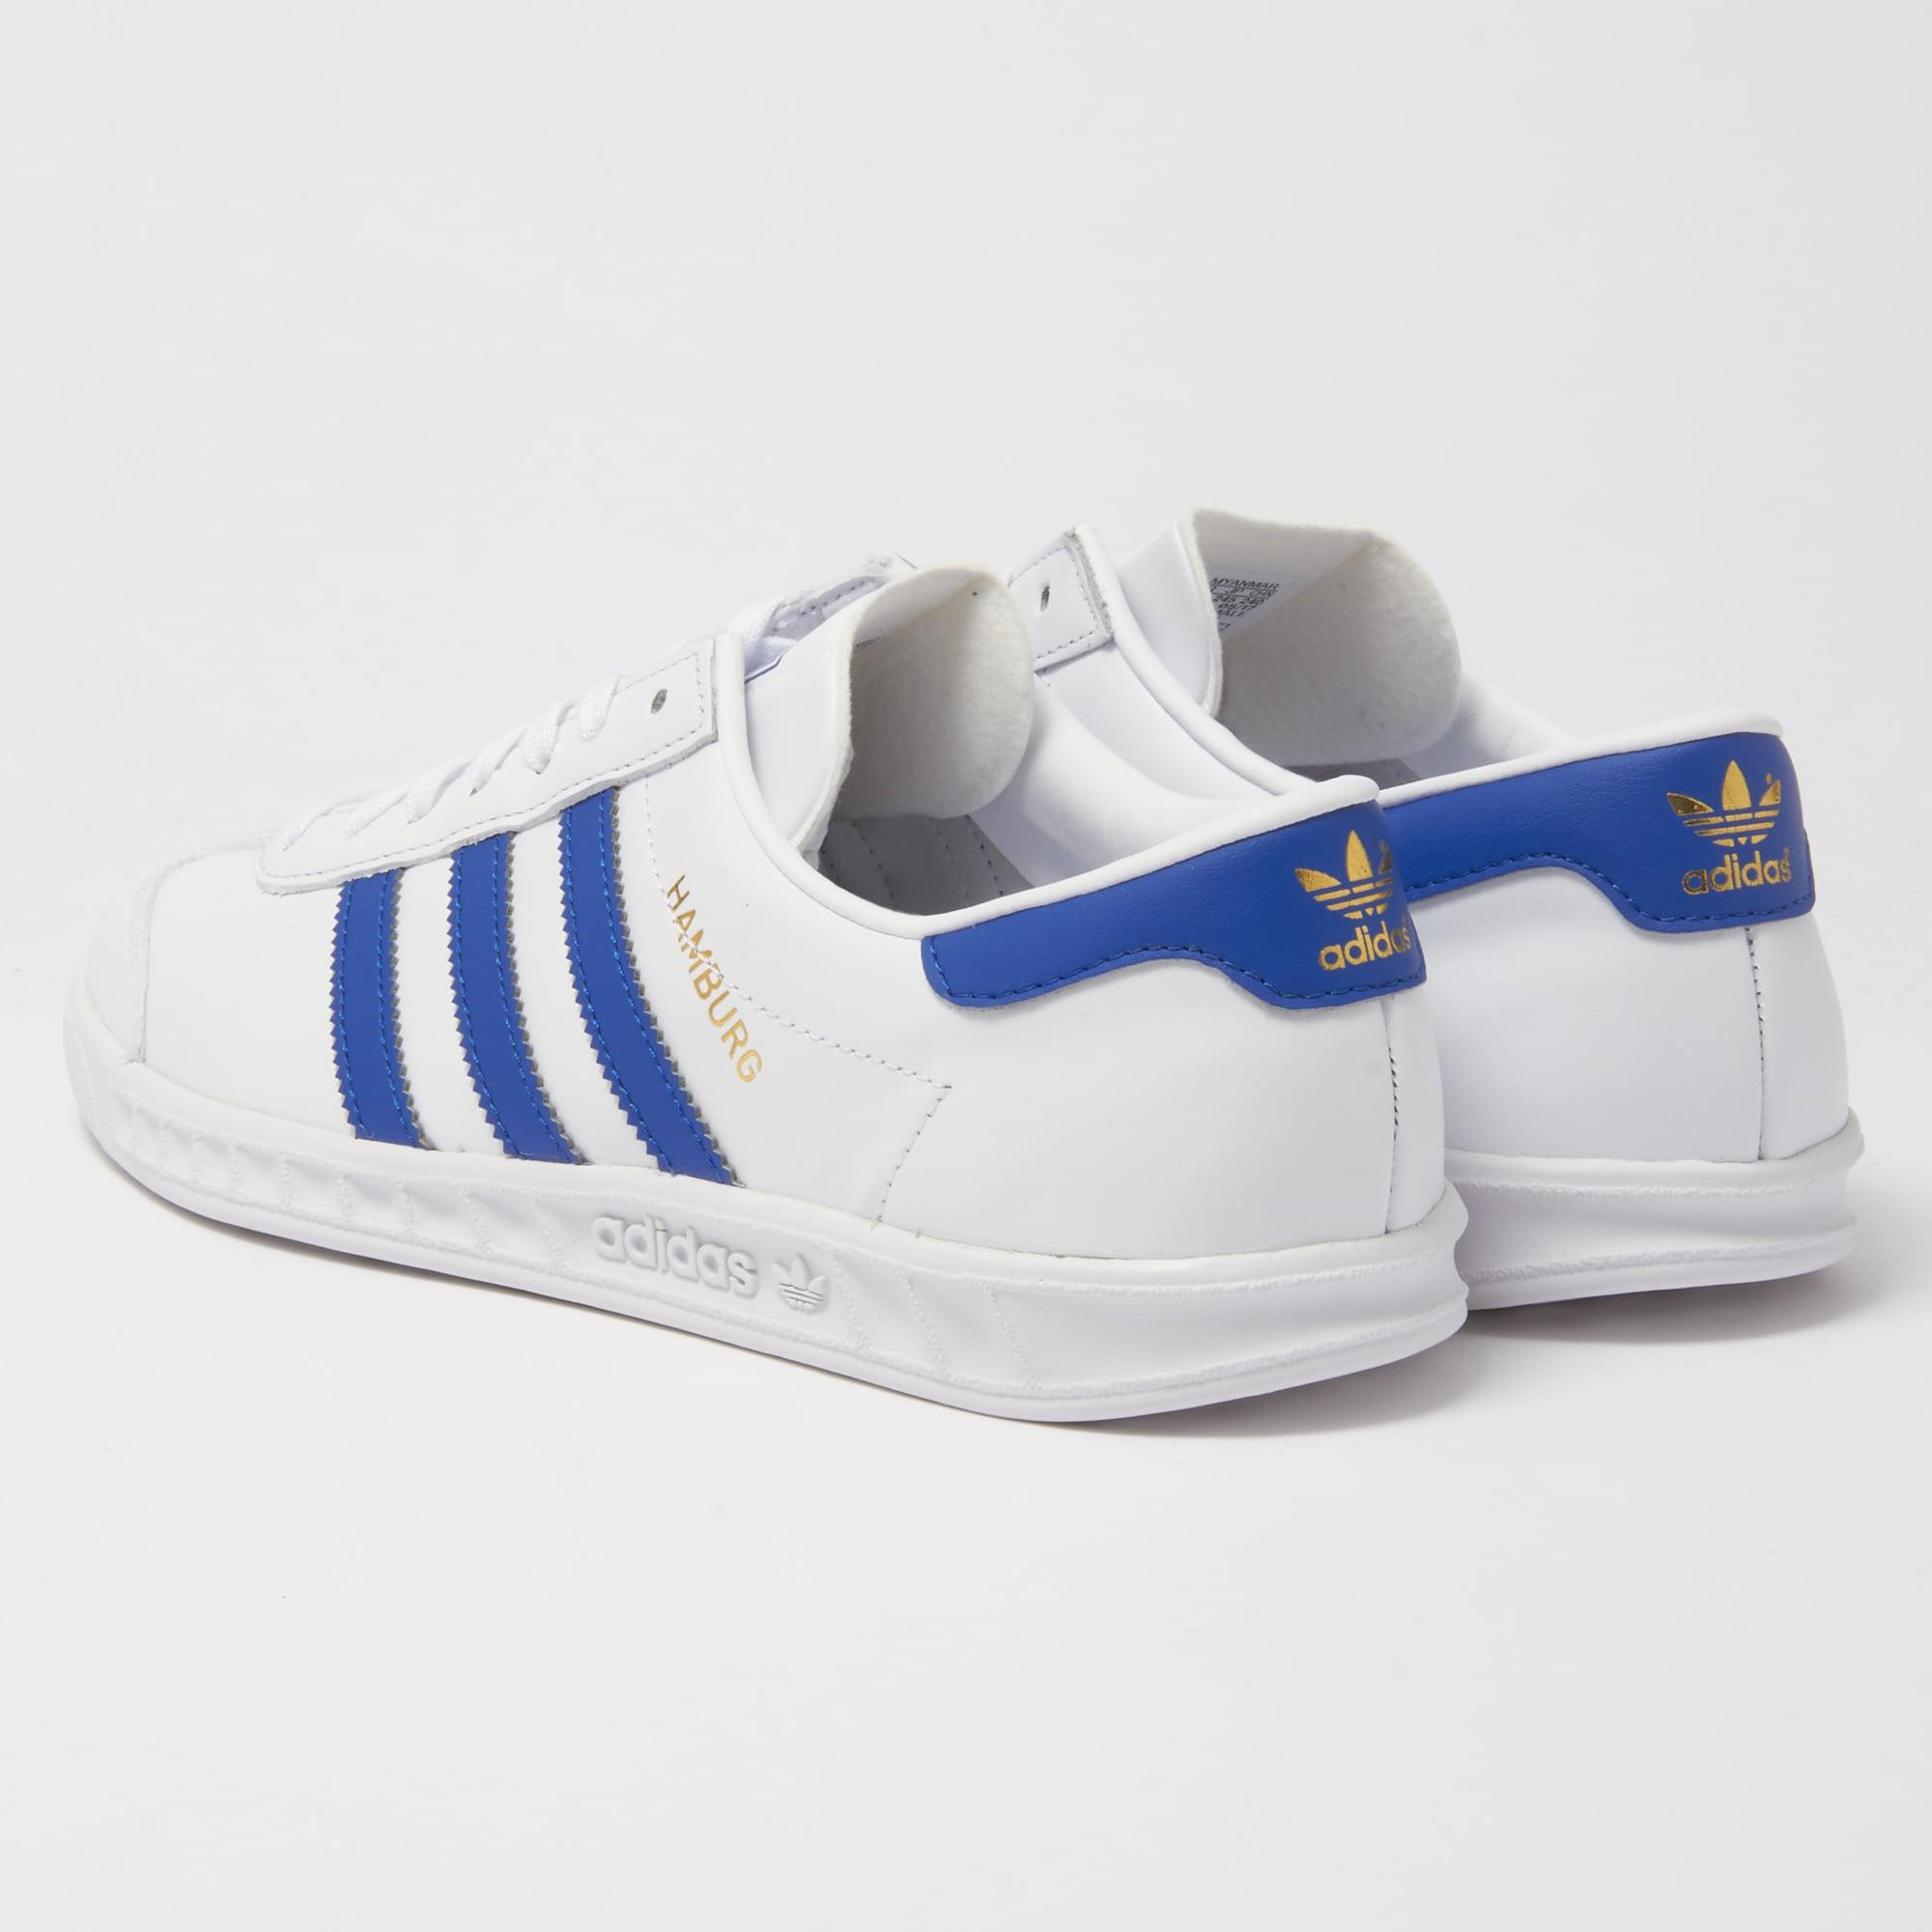 adidas hamburg white and blue buy clothes shoes online